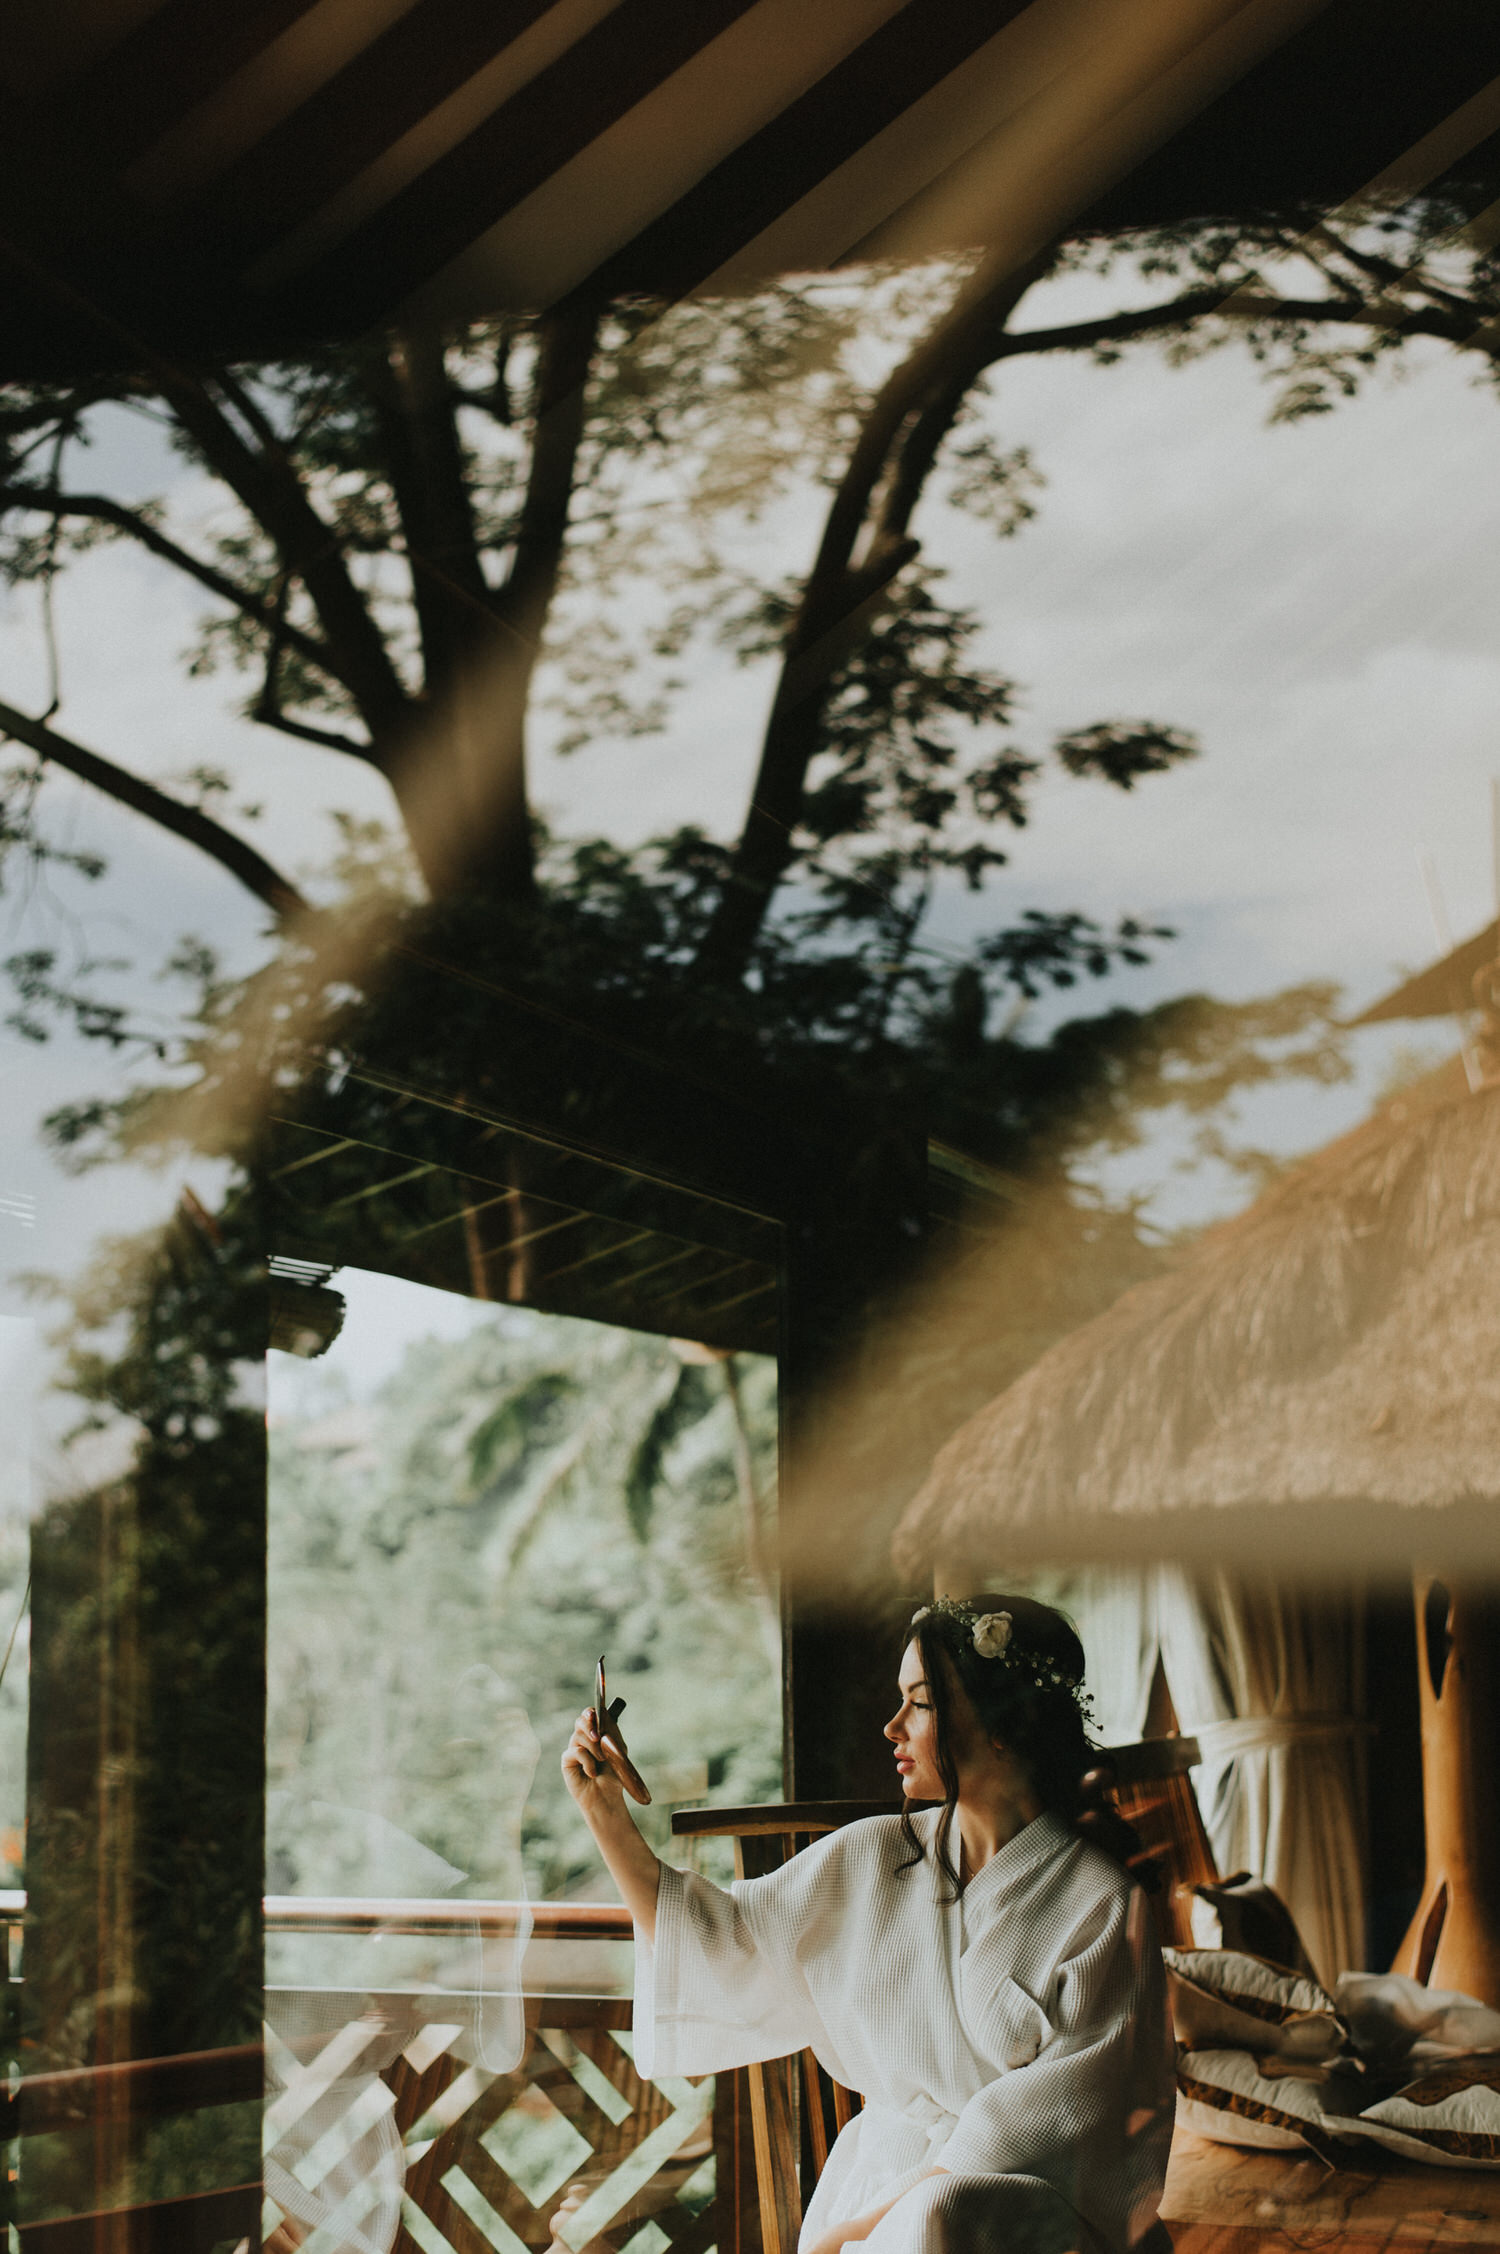 bali wedding - elopement - ubud wedding - diktatphotography - olga + Jason - 33